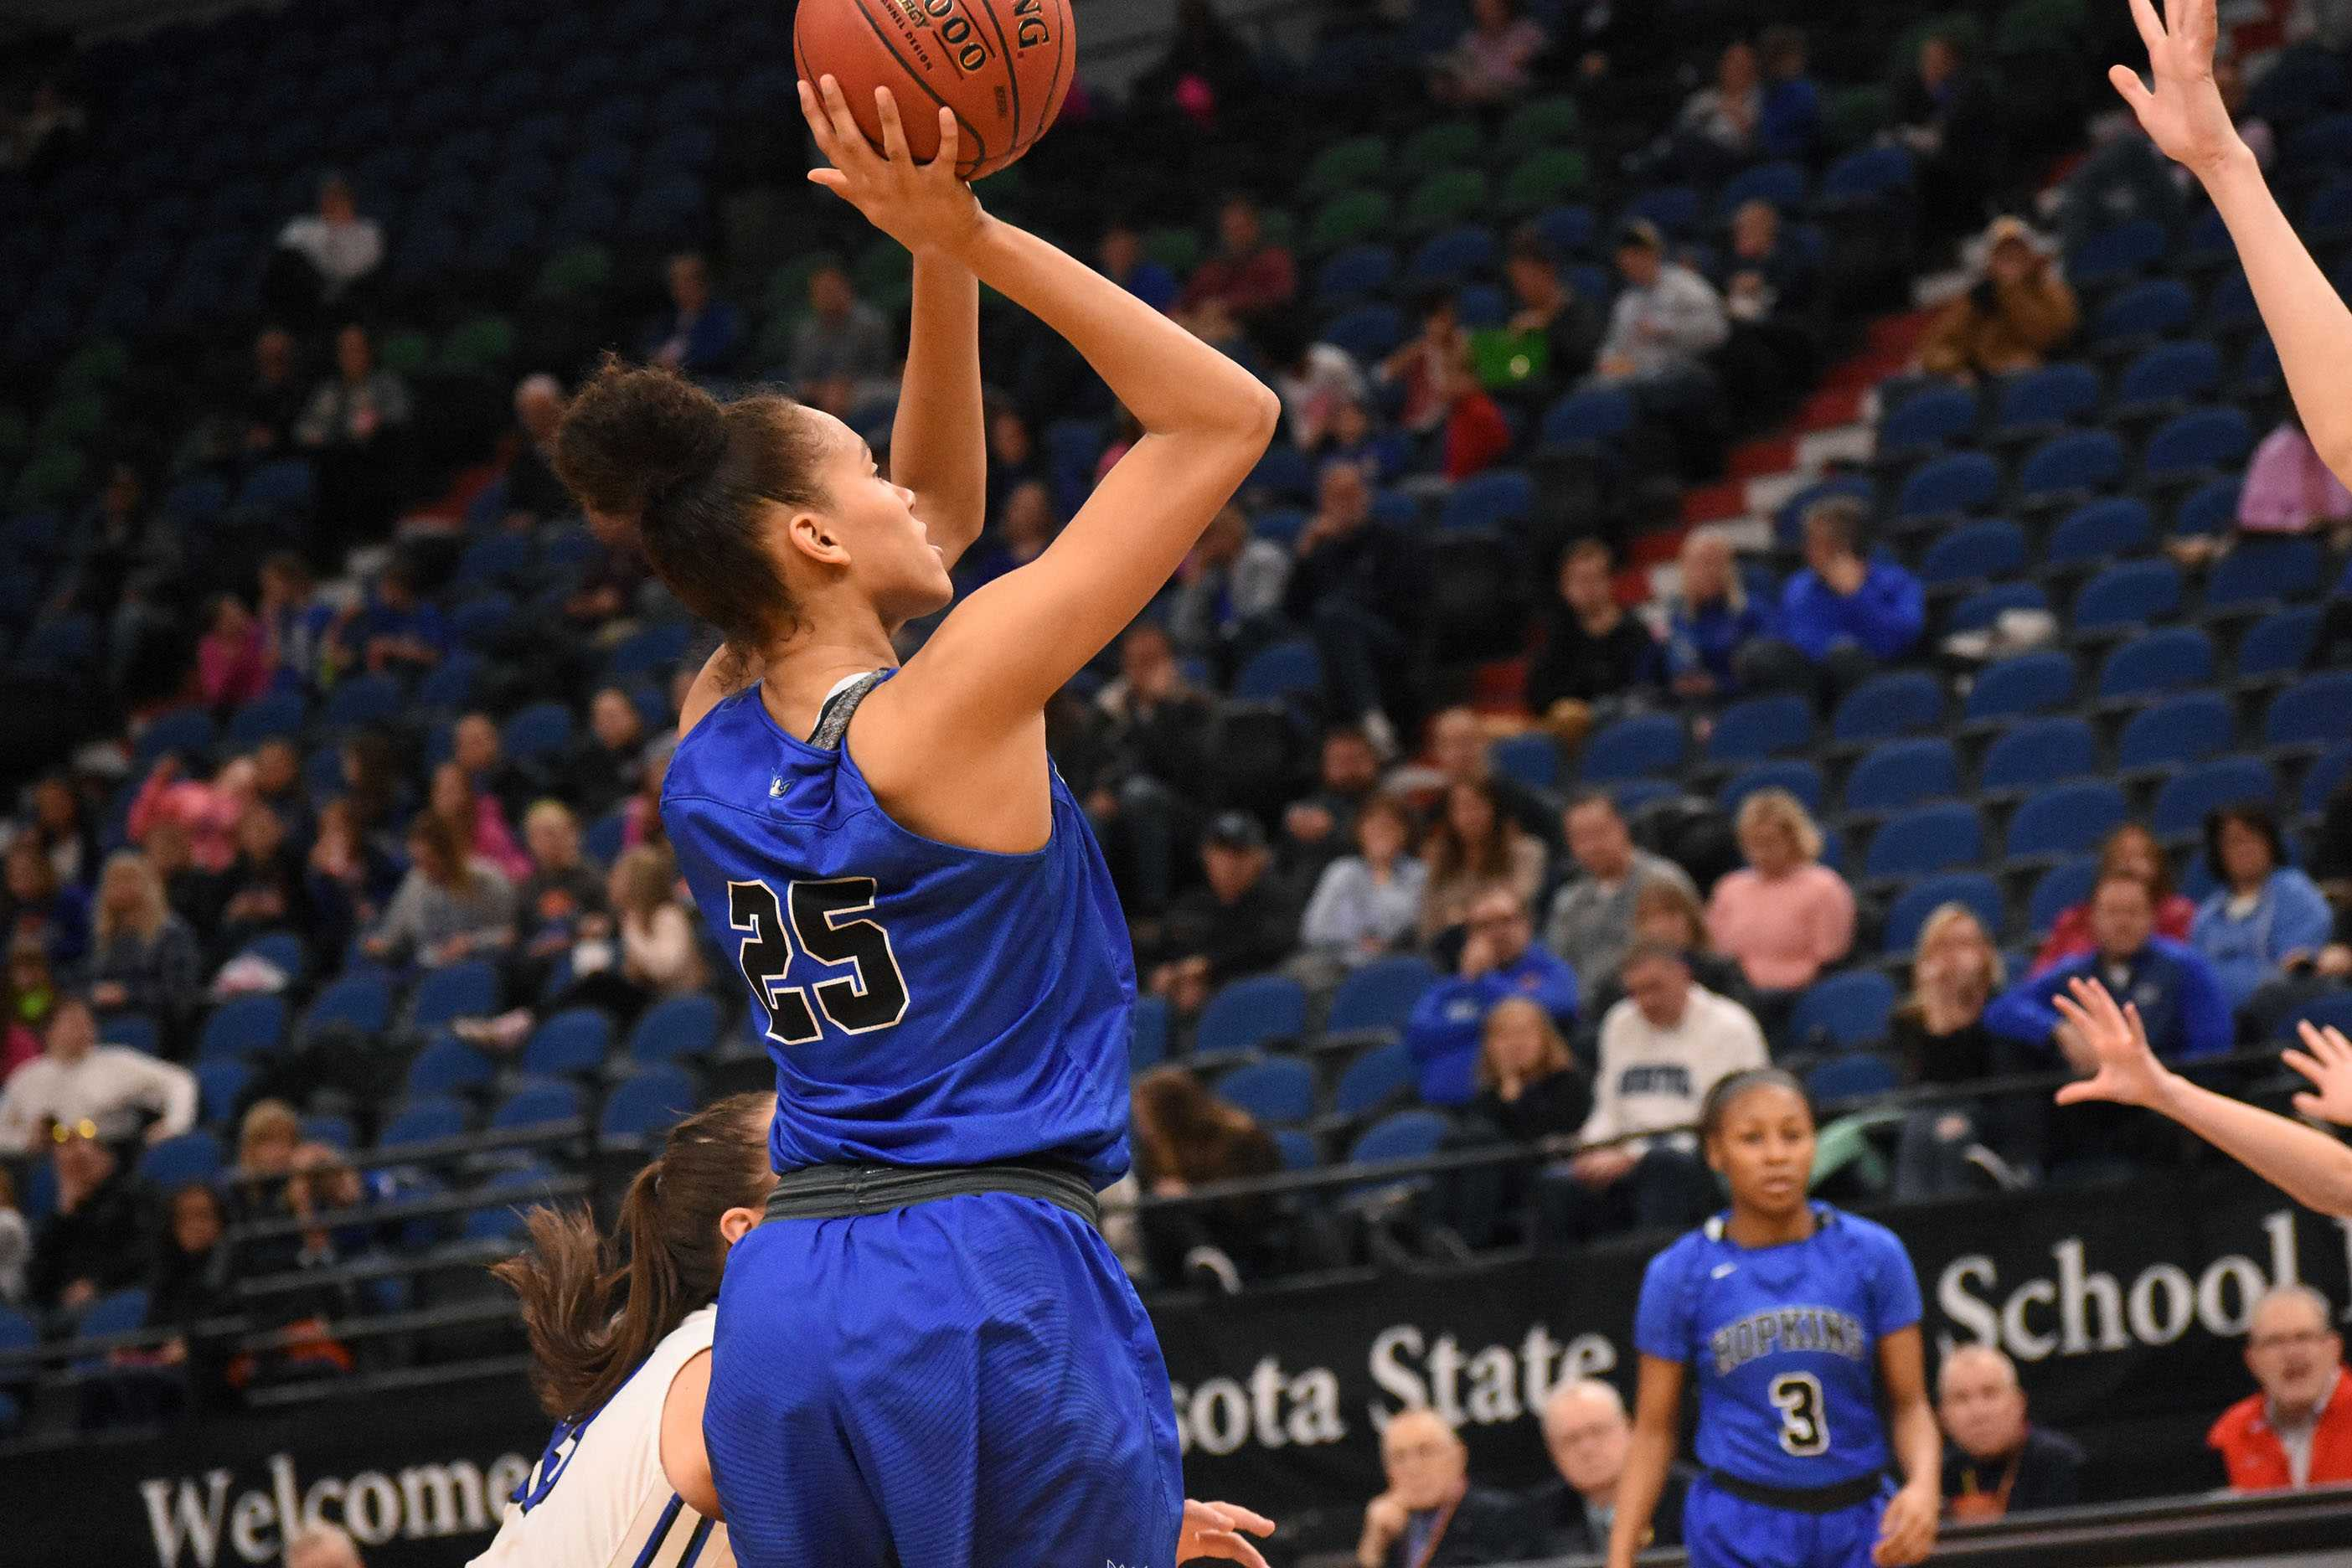 Angie Hammond, senior, makes a basket during the state quarterfinal game.